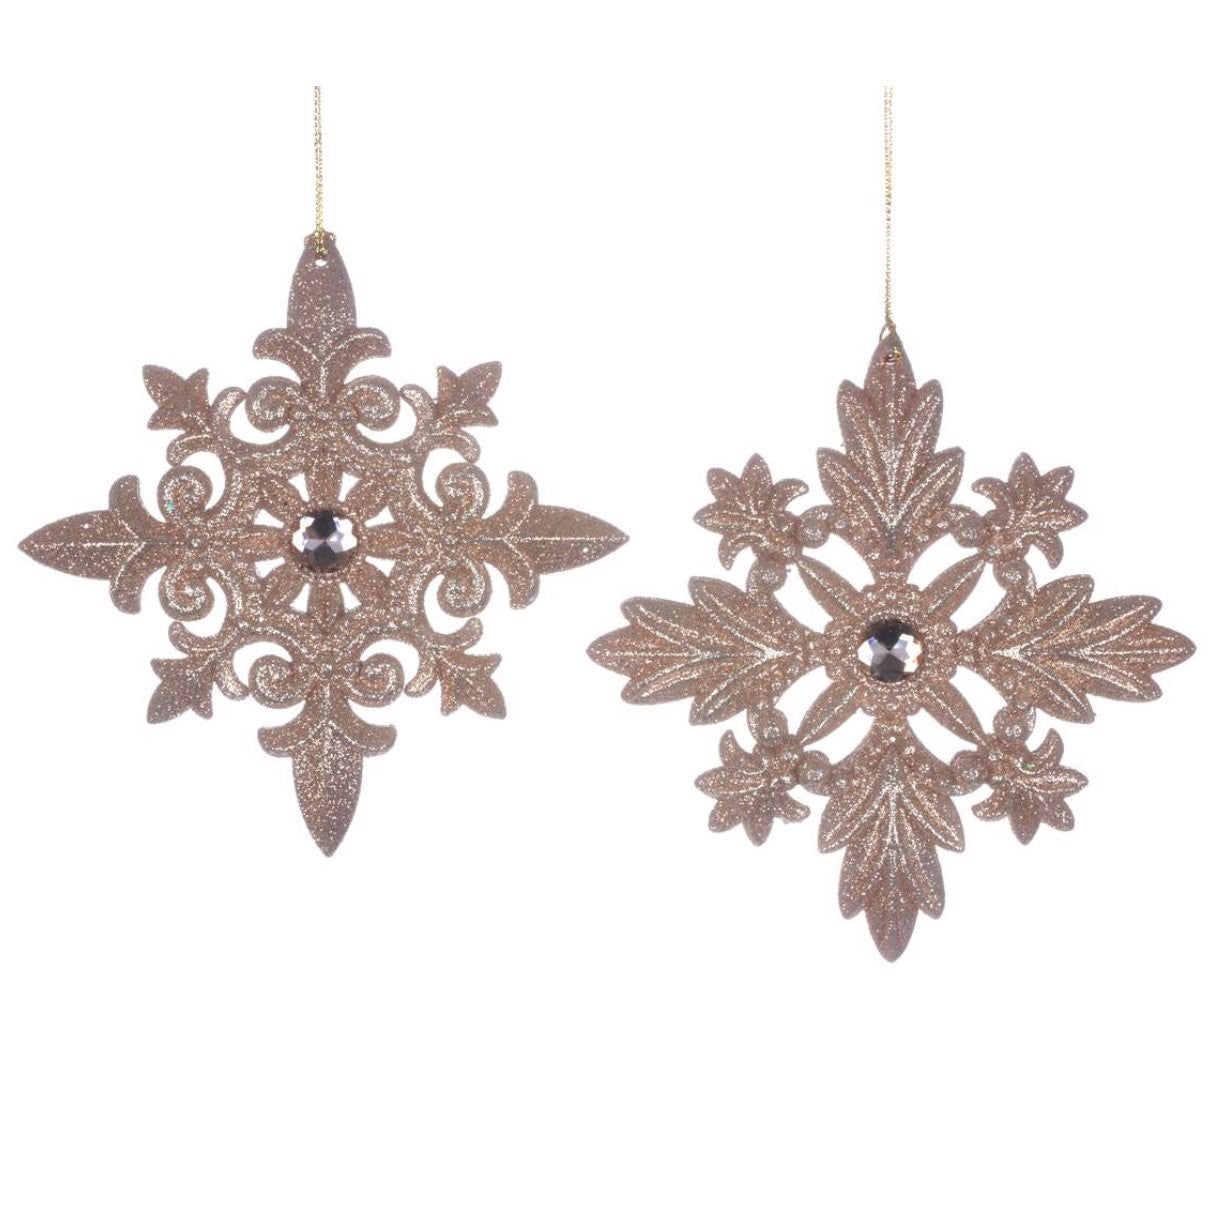 Rose Gold Glittered Snowflake Ornament, CT-Christmas Tradition, Putti Fine Furnishings